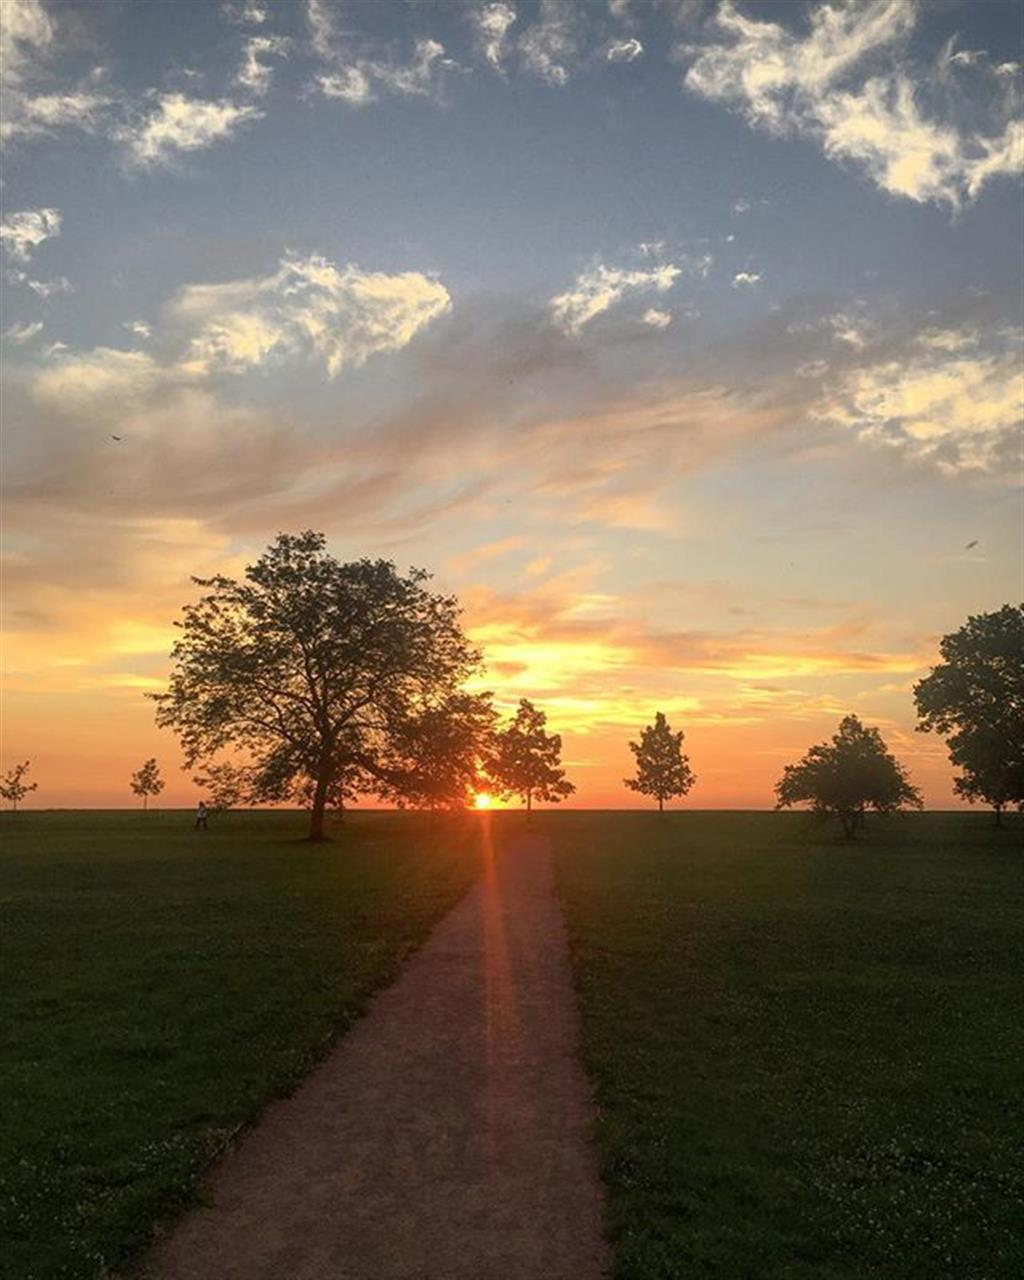 """""""She is always a novelty; for she is never the Chicago you saw when you passed through the last time."""" #chicago #sunrise #leadingrelocal #lakeview #bairdwarner #realestate #lincolnpark #northside"""